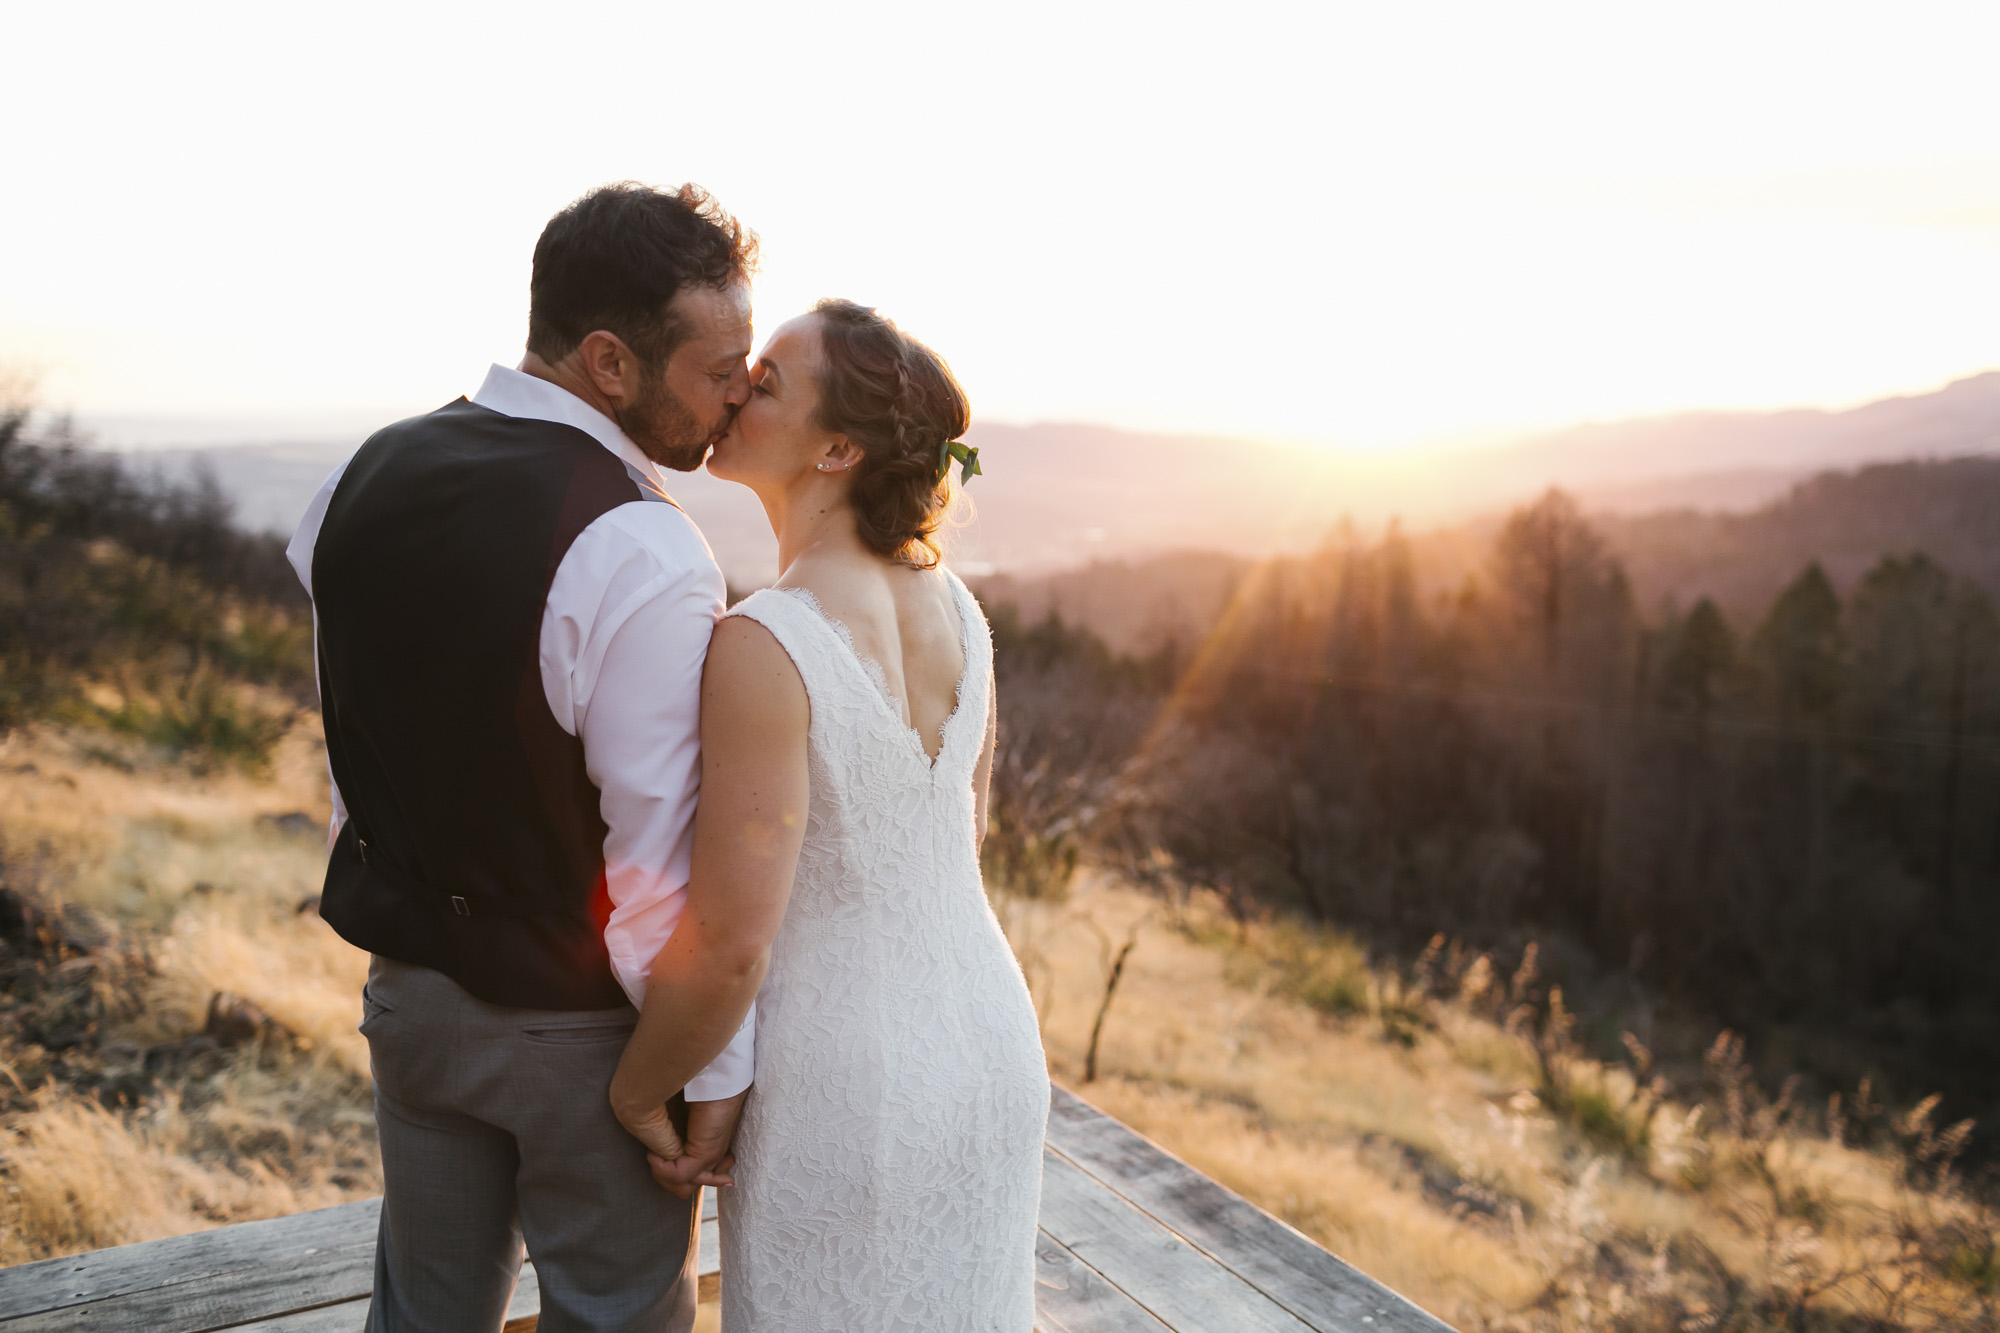 Wedding couple kiss at sunset in front of Sonoma wildfire damage